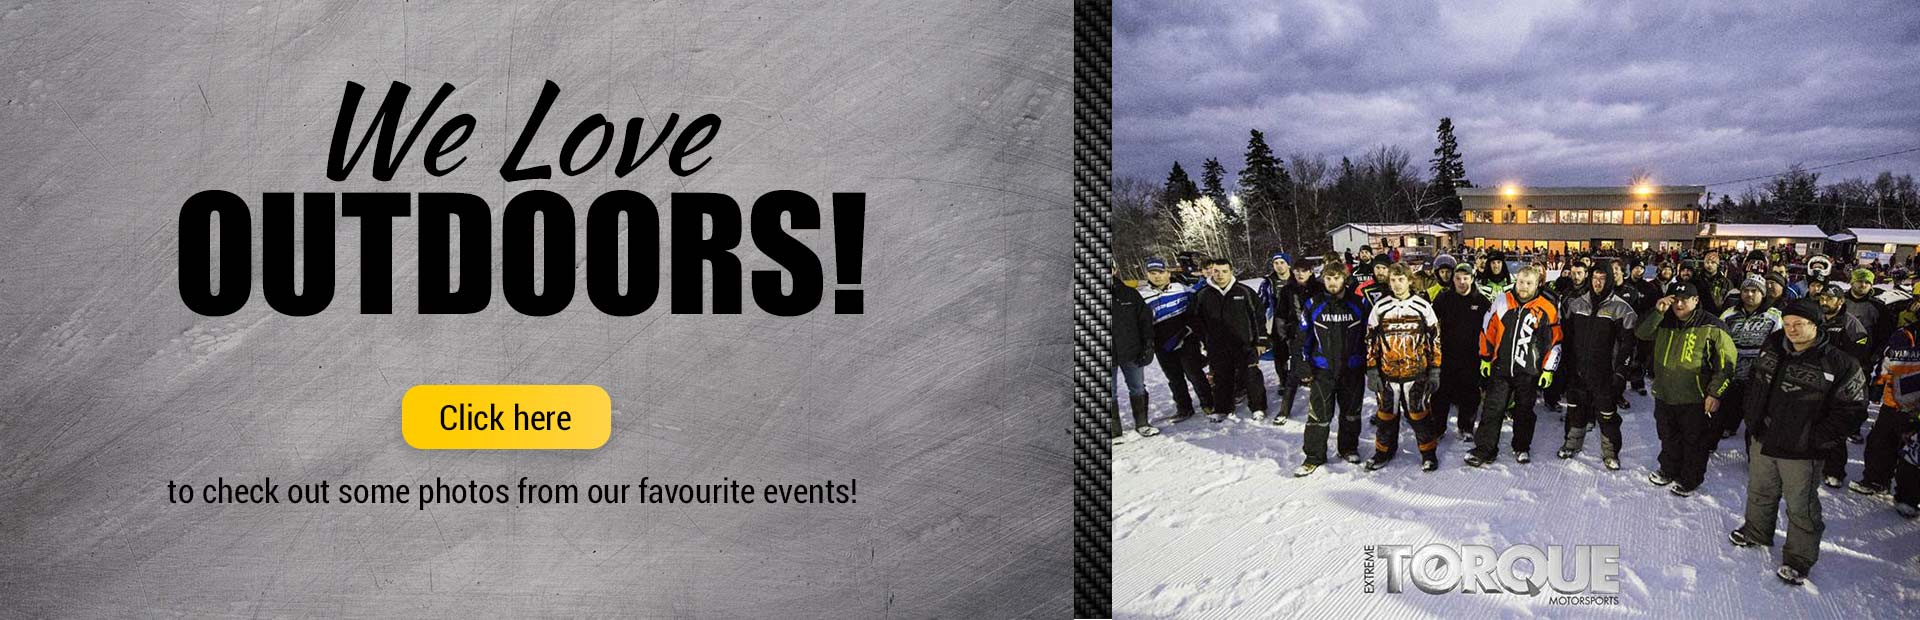 We love outdoors! Click here to check out some photos from our favourite events!